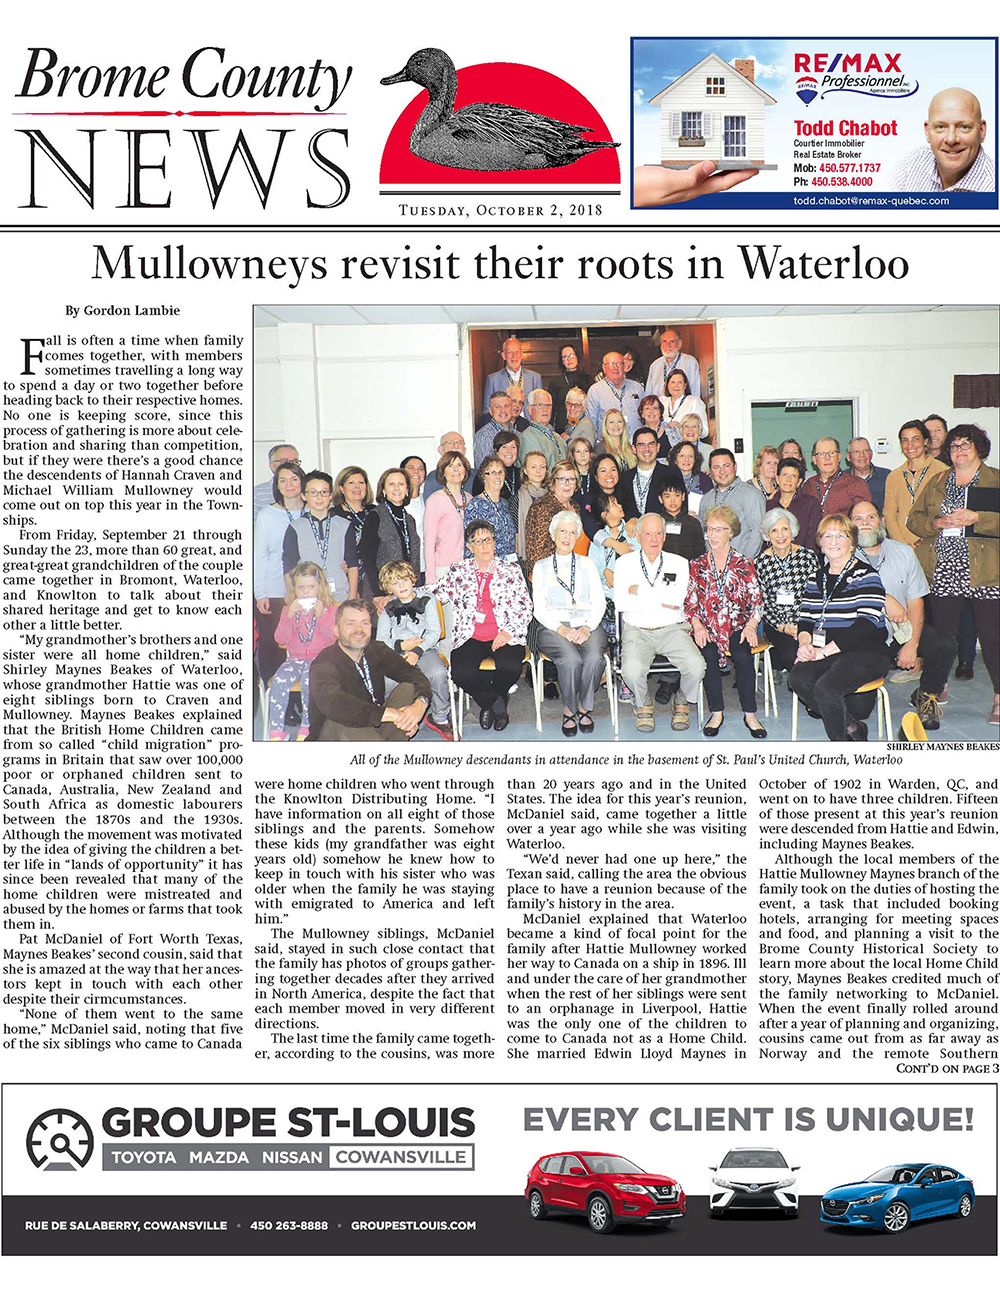 Brome County News – October 2, 2018 edition